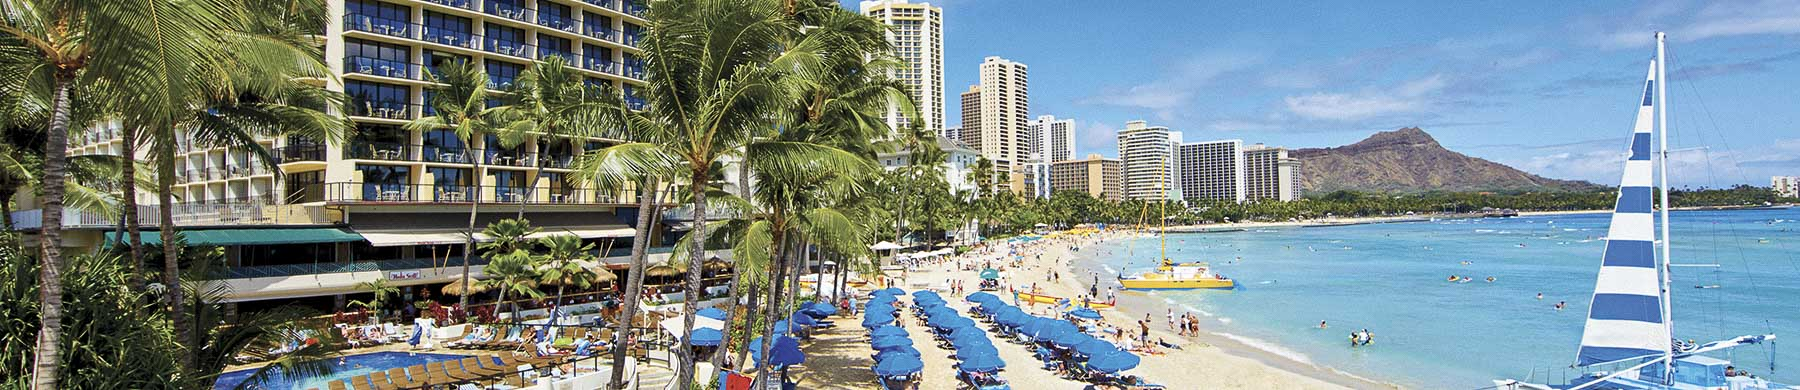 Nearby Locations from Outrigger Waikiki Beach Resort, Honolulu